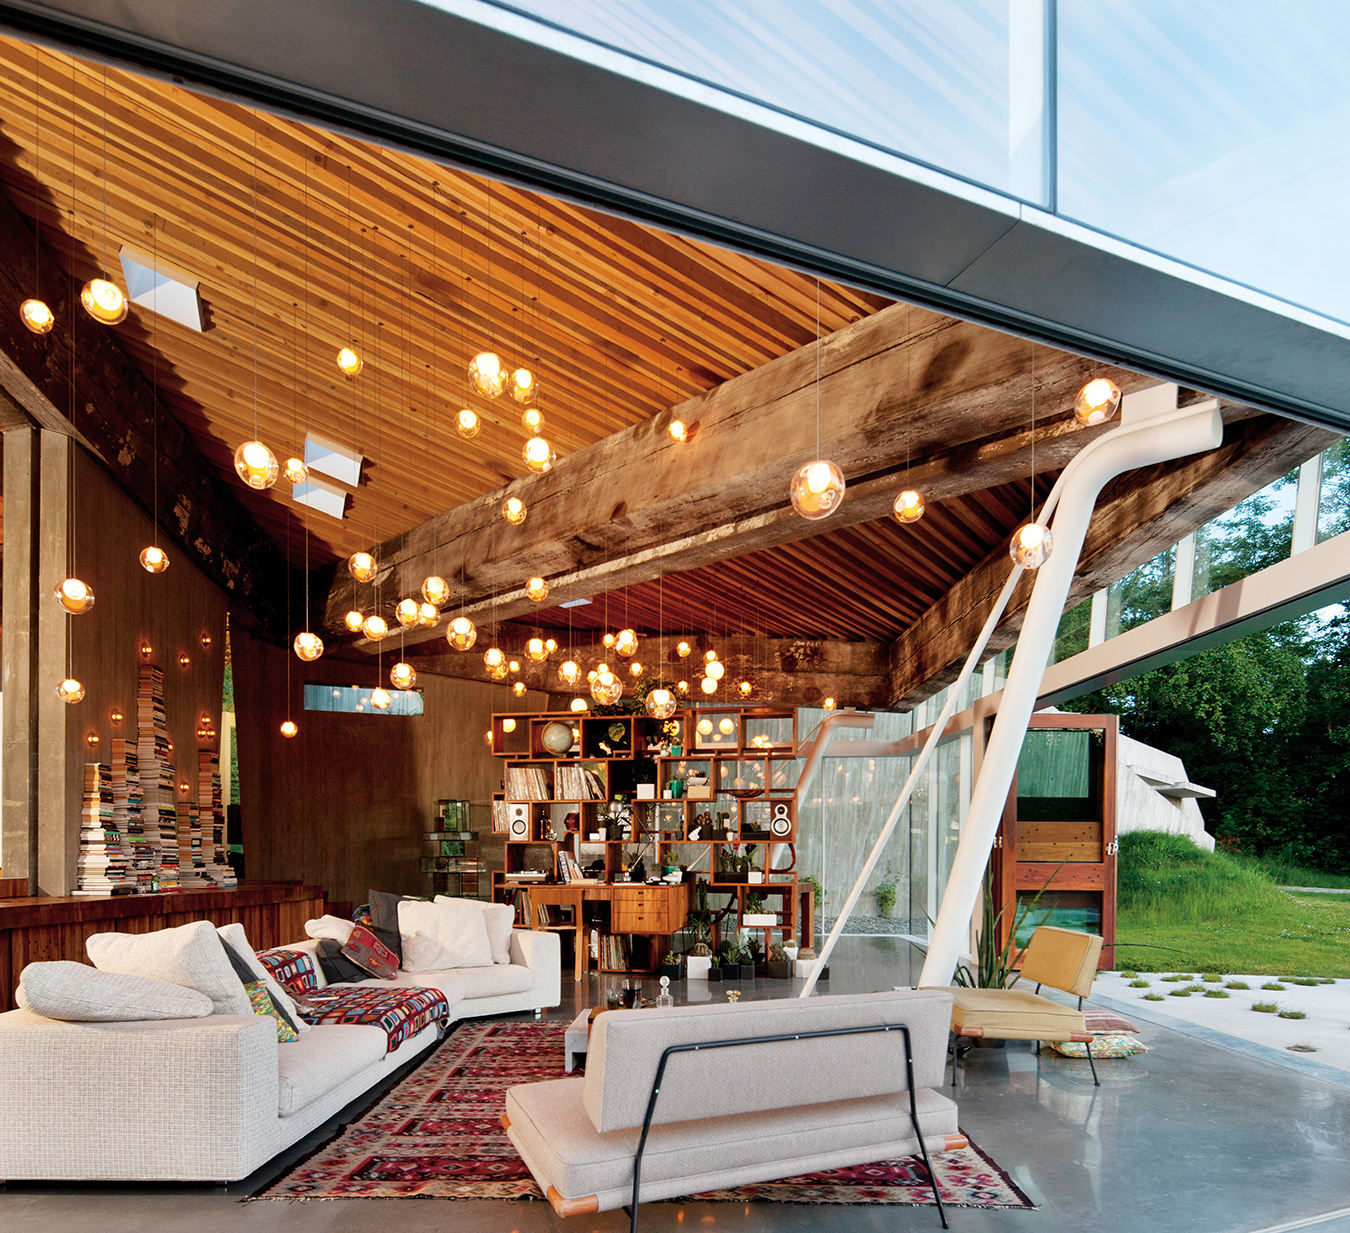 Image of: Top Omer Arbel On Best The 232 House Design By Omer Arbel Modern Architecture Ideas Interior